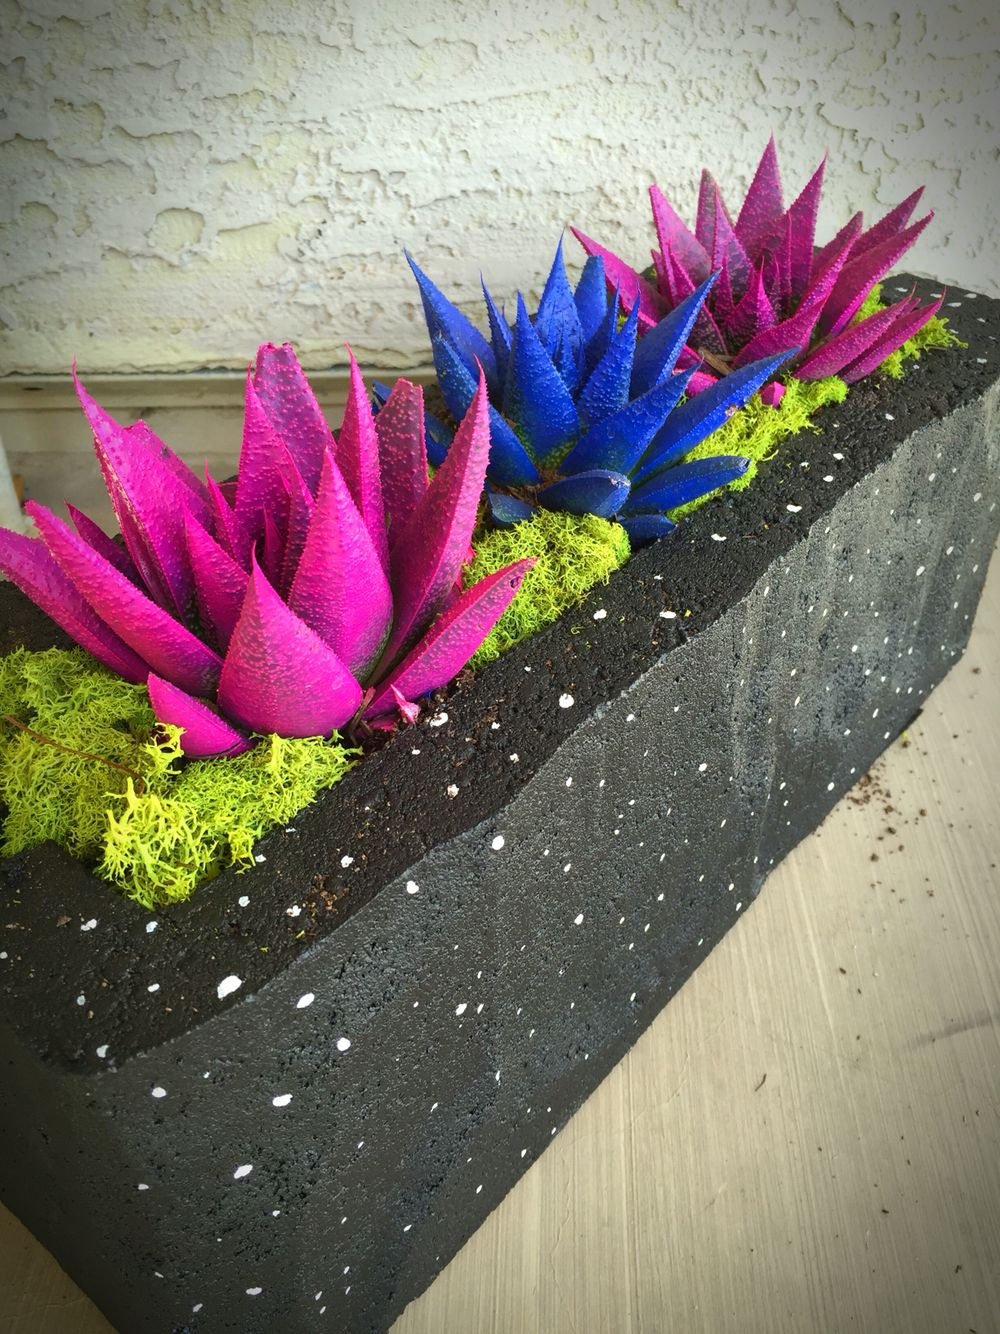 Cosmic Cactus From Home Depot Planted In A Brick Painted Black With Stars Pretty Awesome Purple Martin House Air Plants Plants